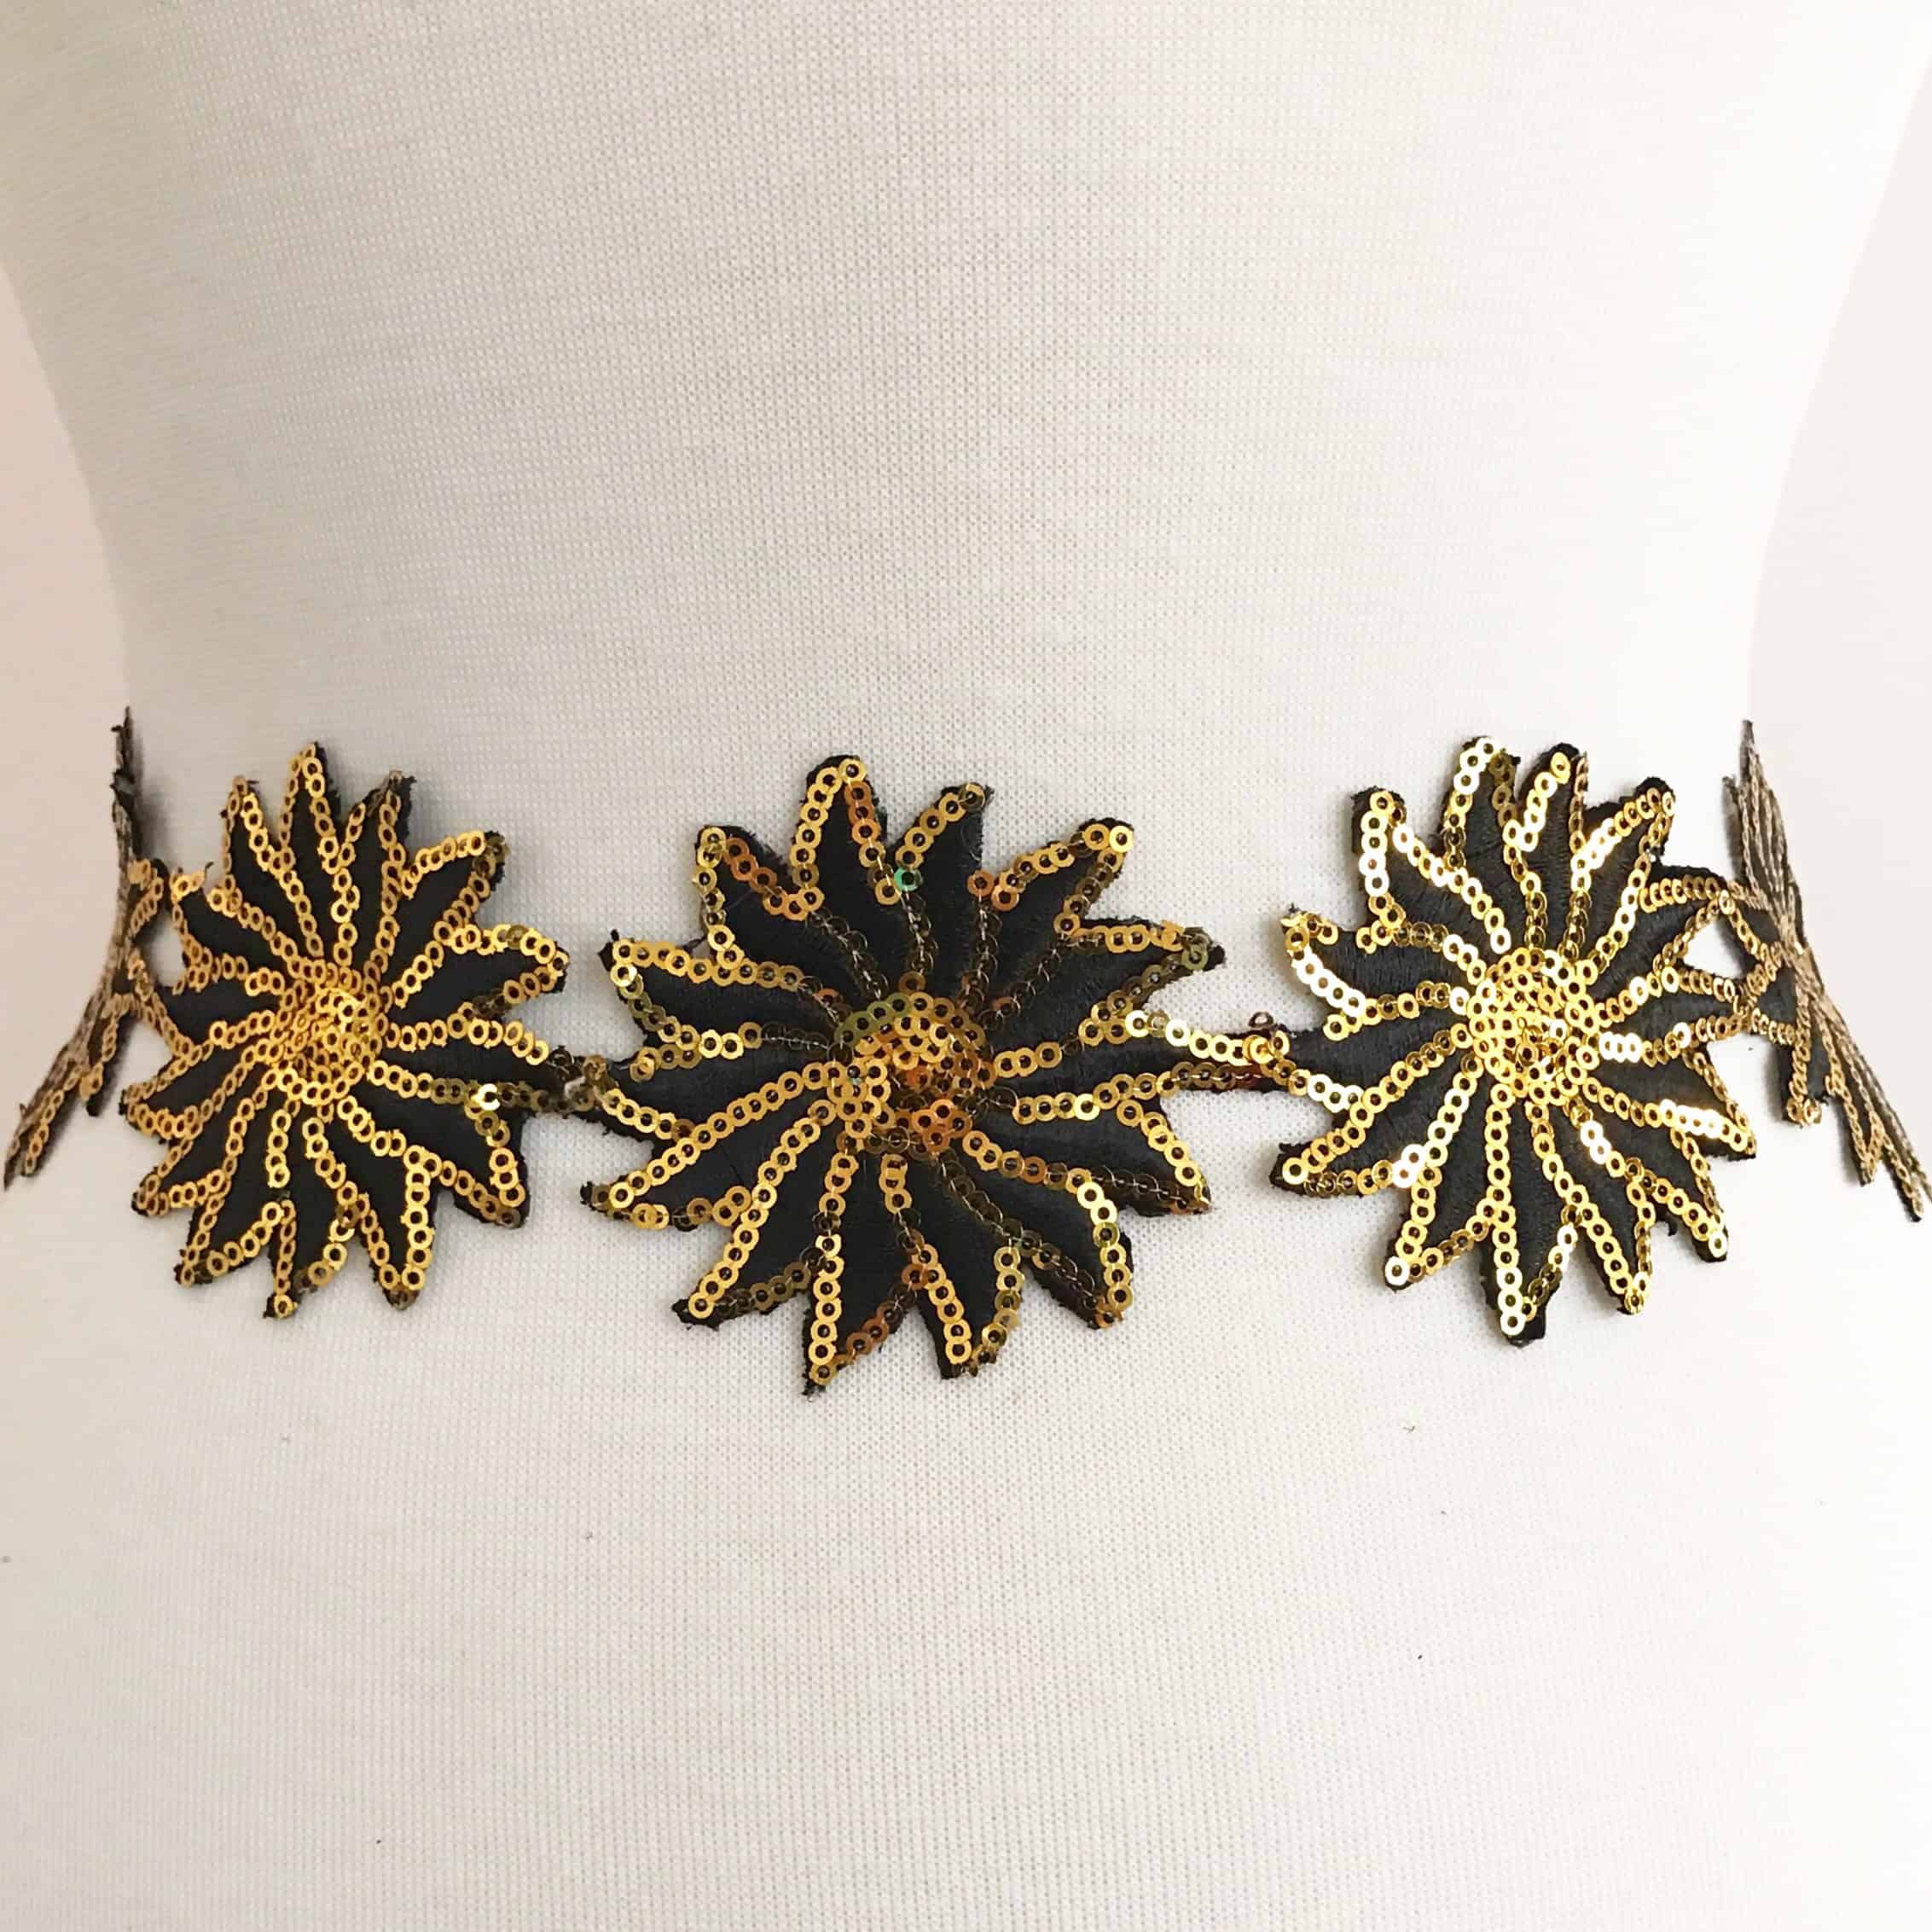 Black and Gold Sequin Embroidered Flower Trim